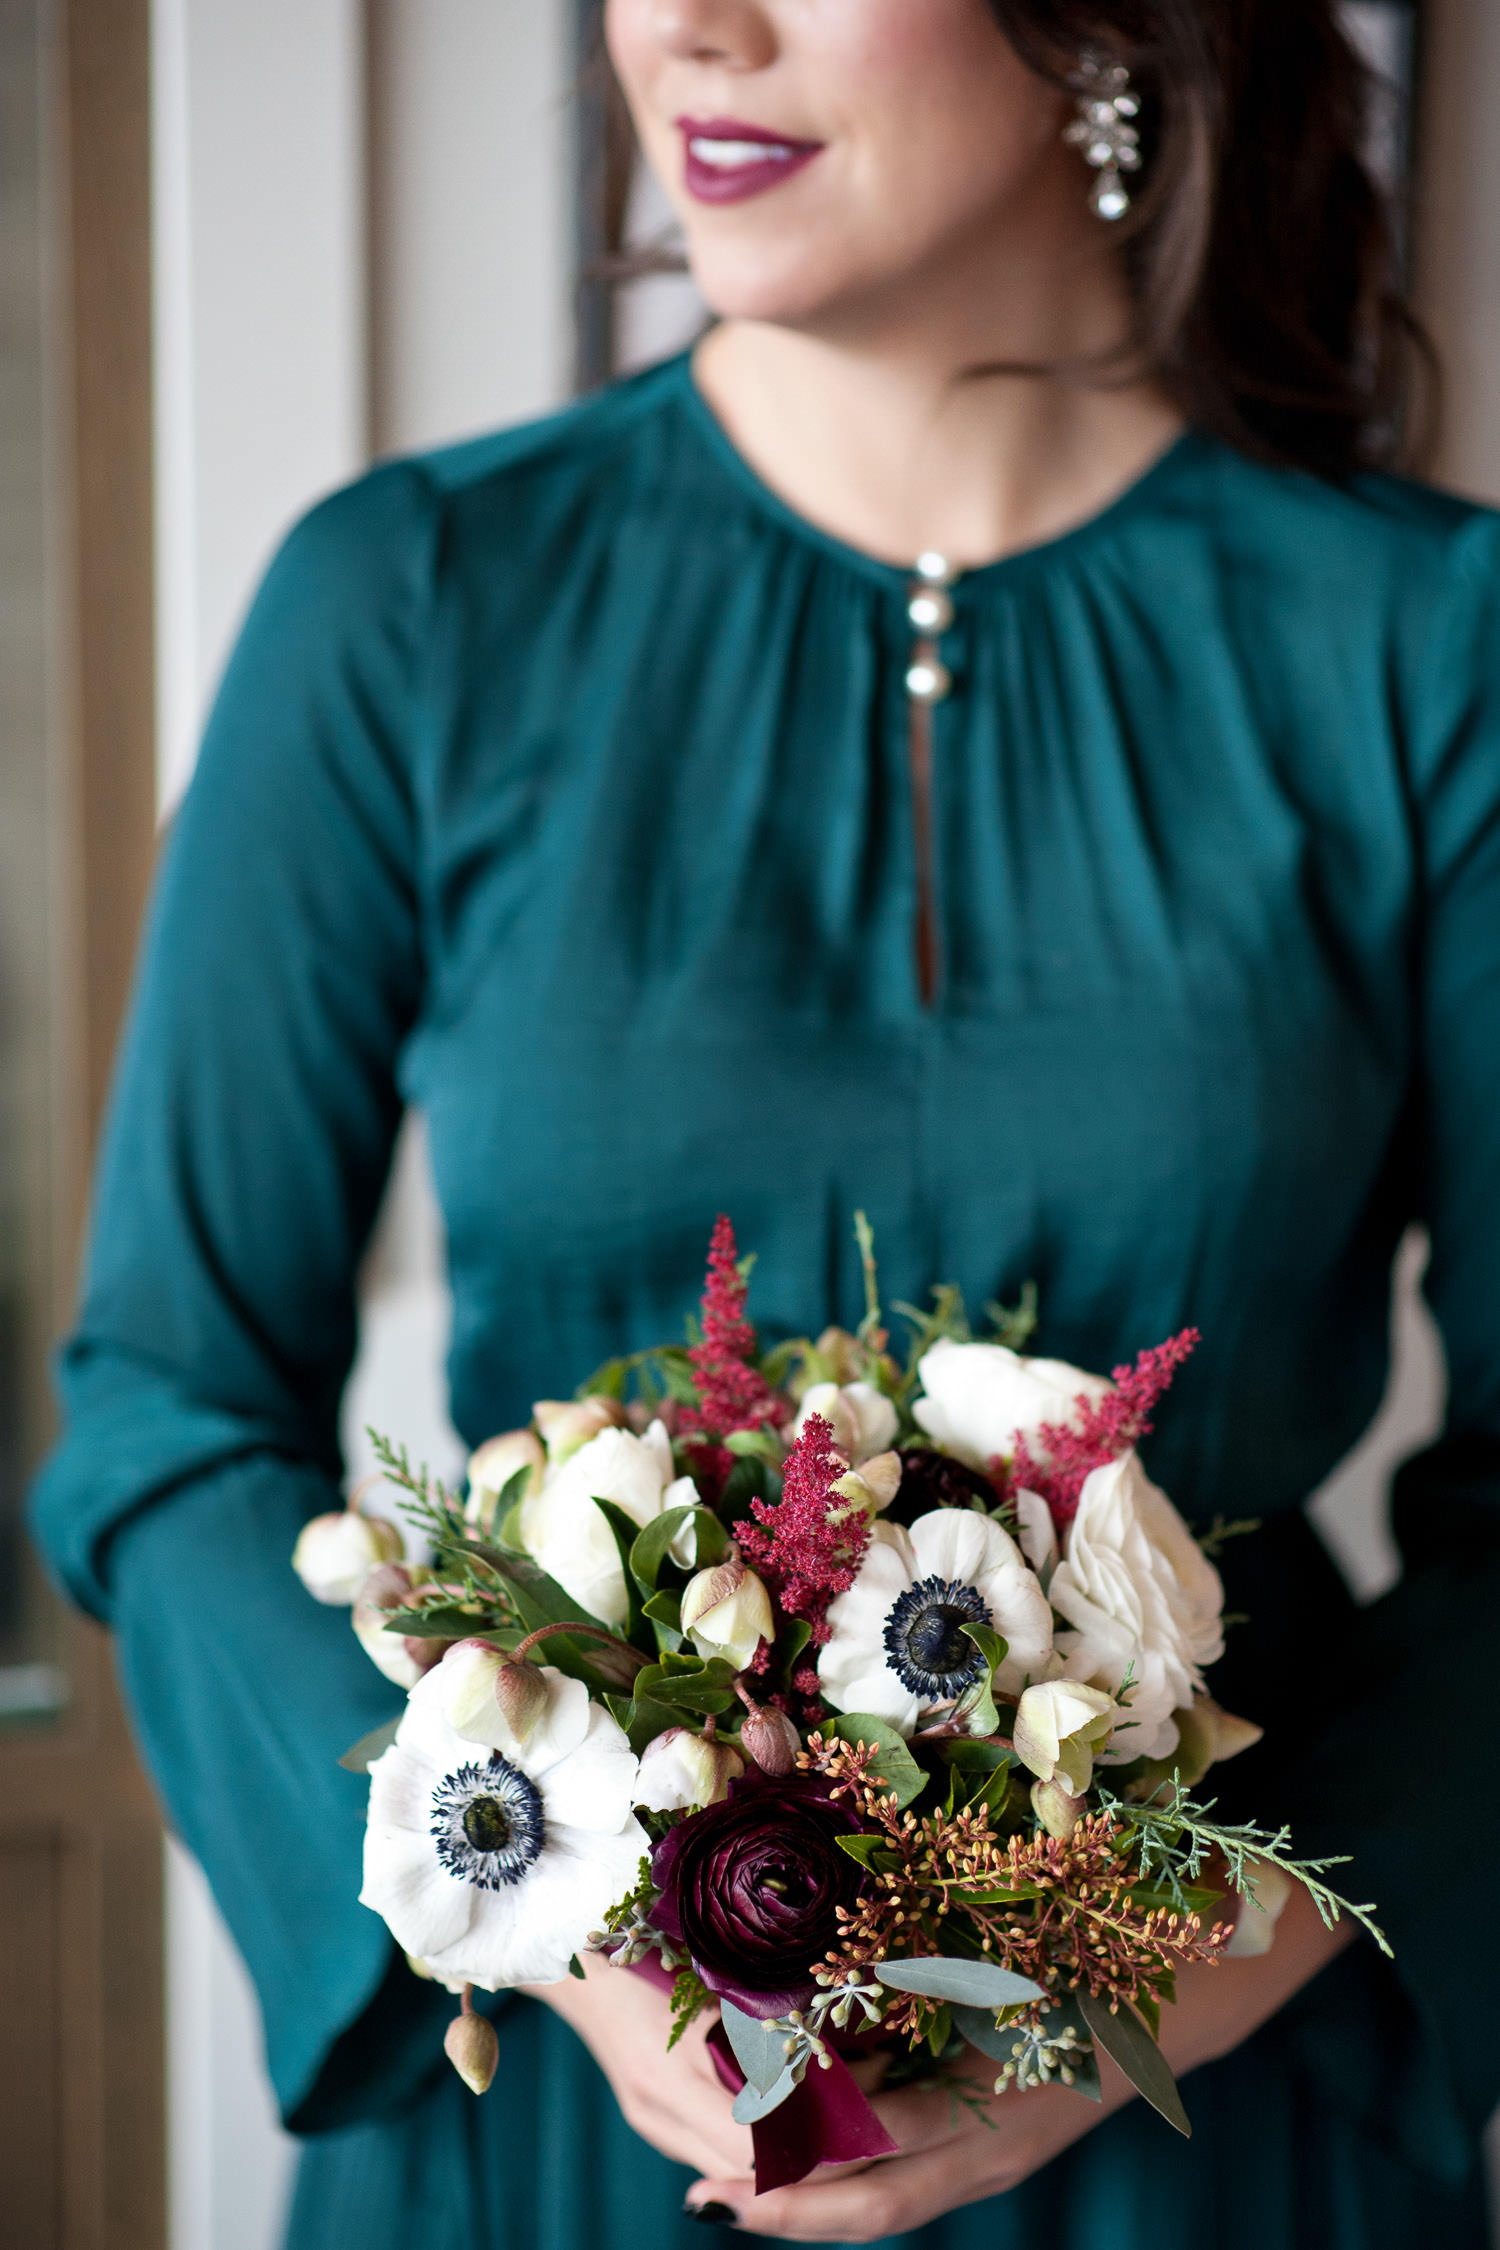 Panda anemones and other winter blooms captured by Tara Whittaker Photography